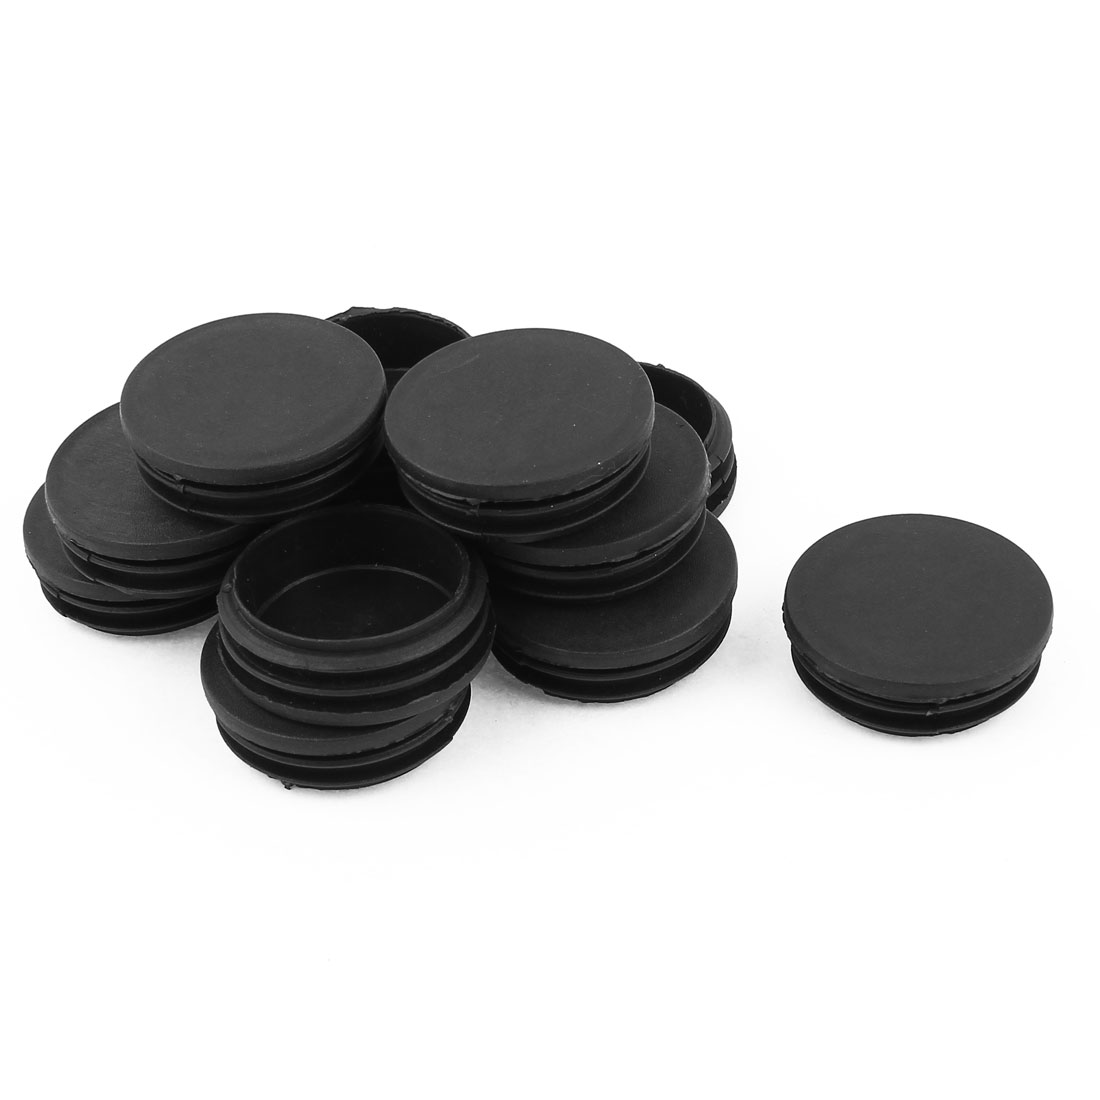 12 Pcs Black Plastic 47mm Dia Round Tubing Tube Insert Caps Covers